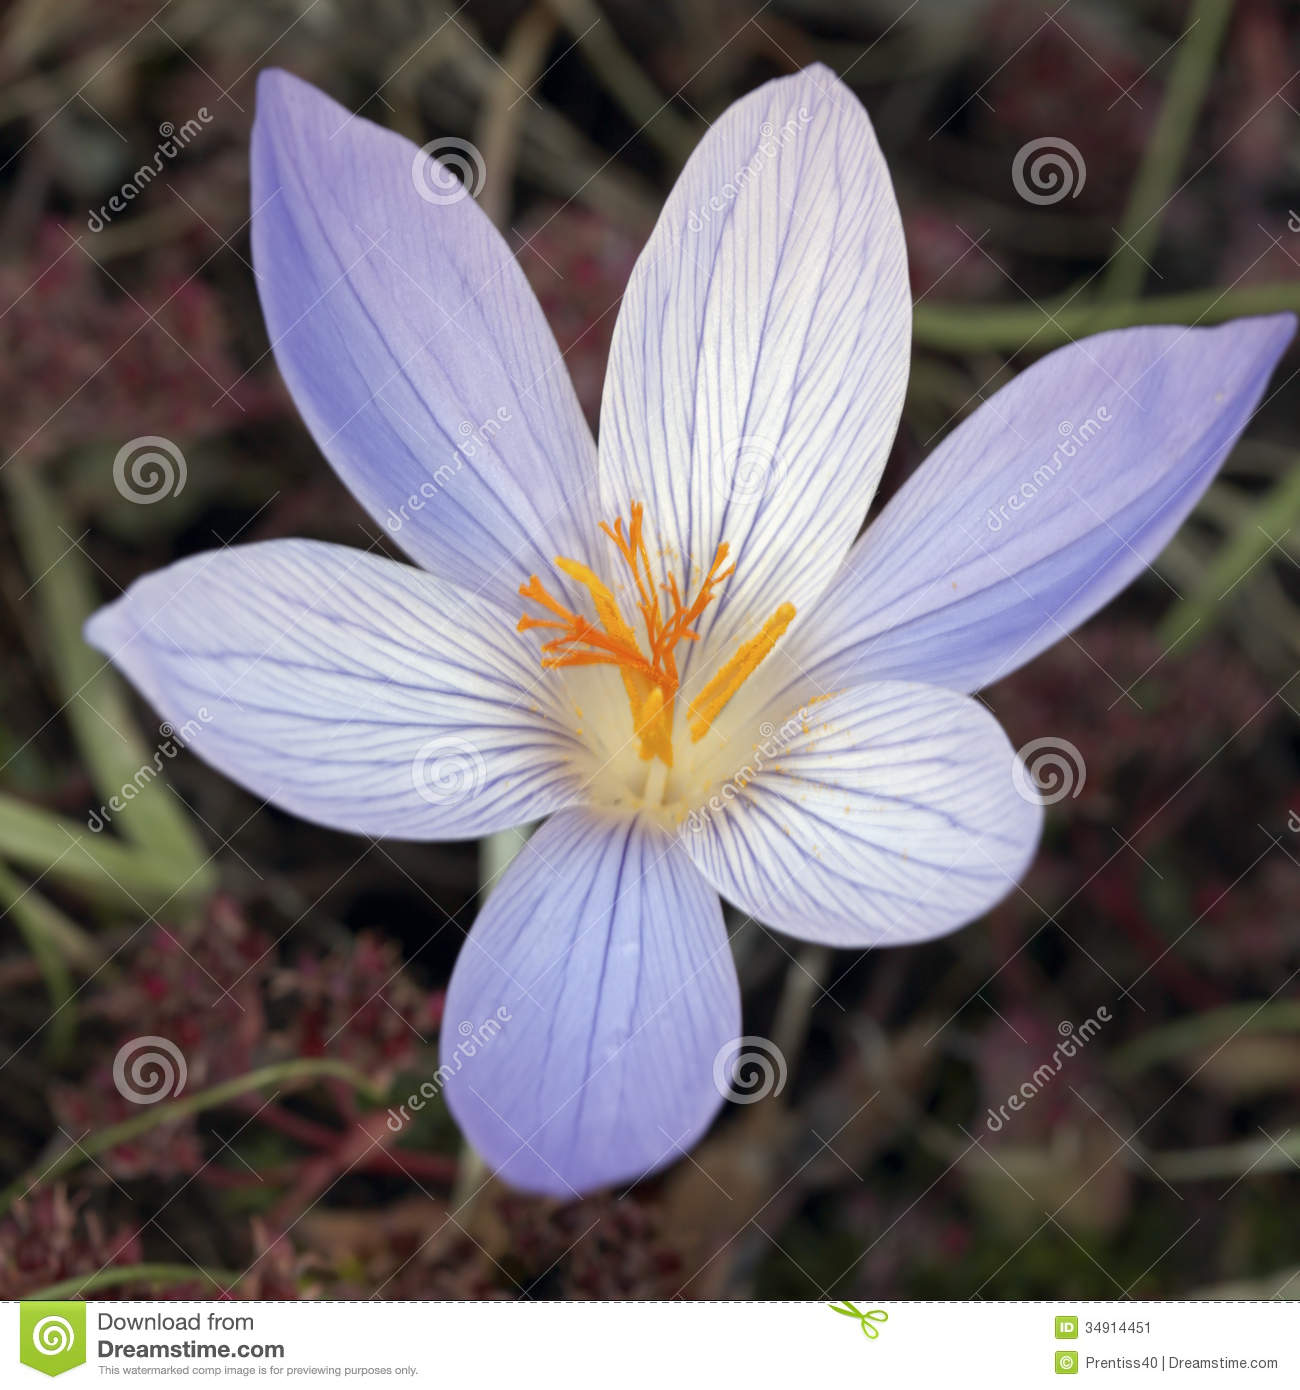 Autumn Crocus Stock Image.